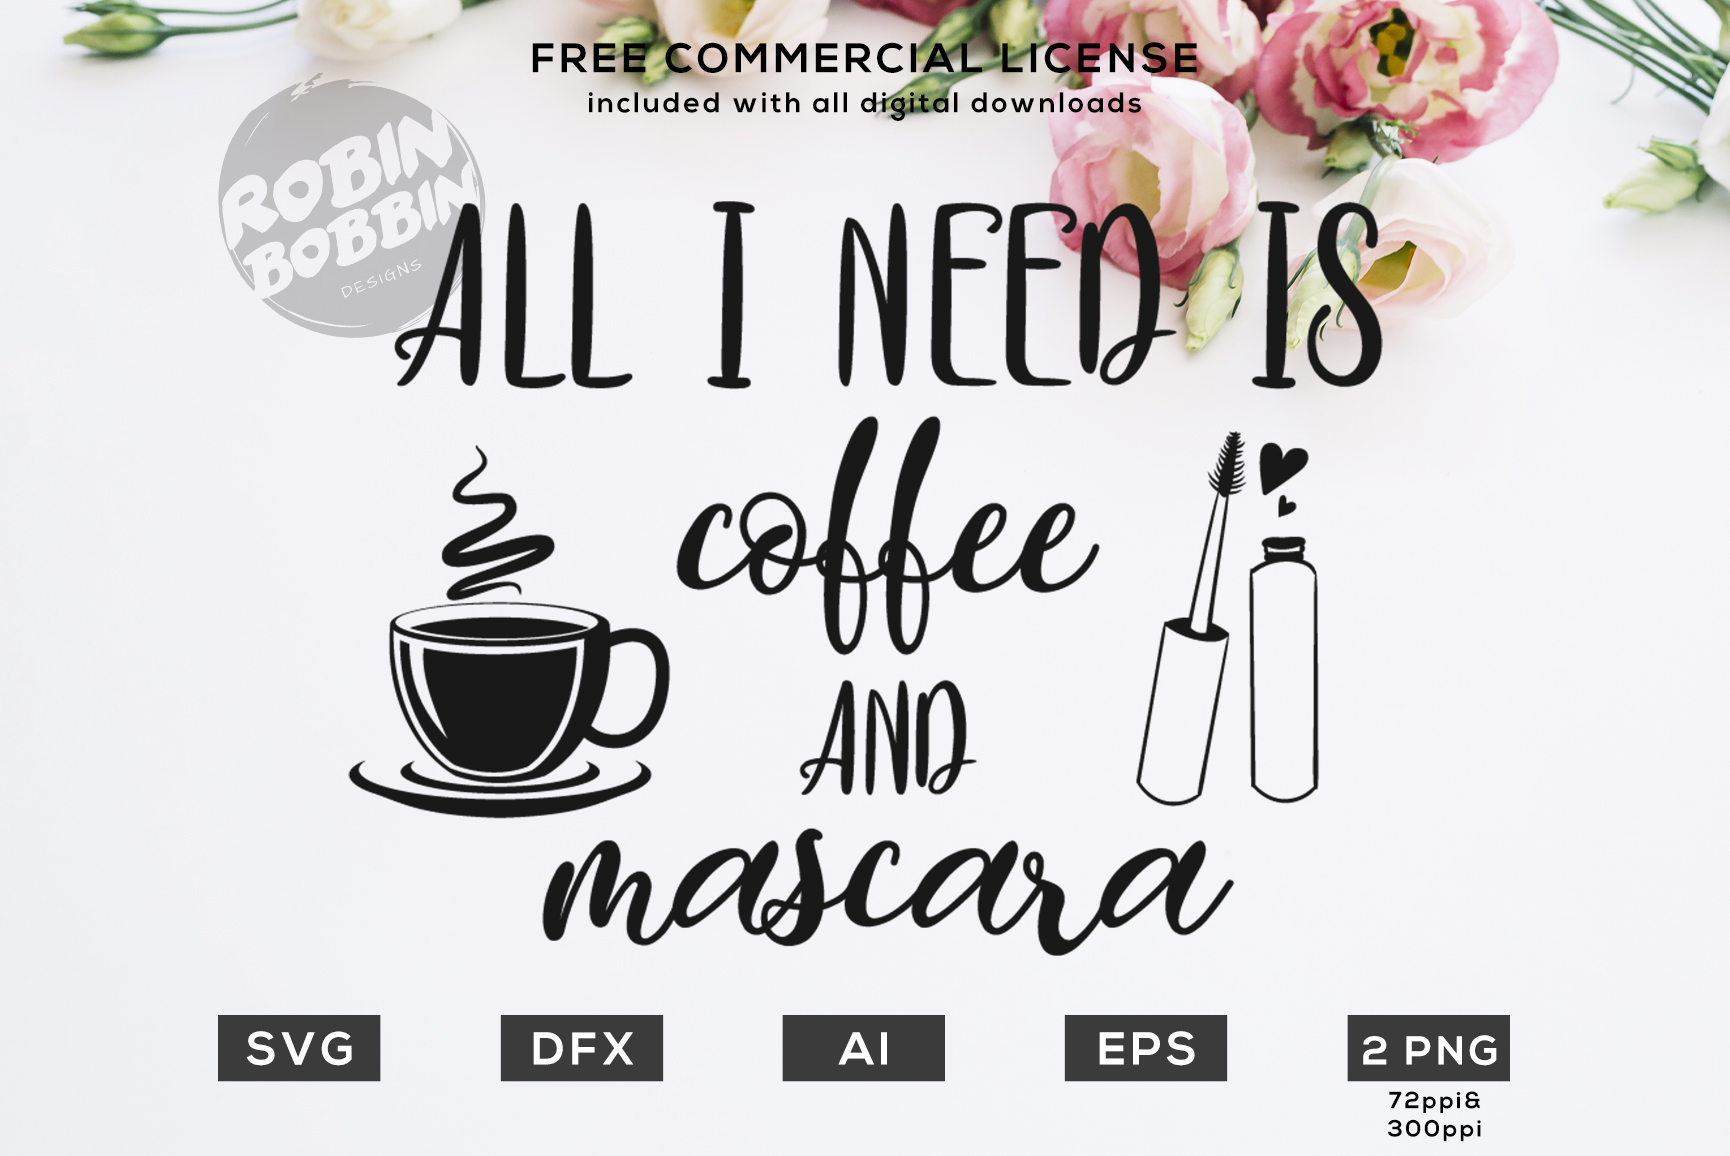 All I Need Is Coffee and Mascara - Mother SVG Design example image 1